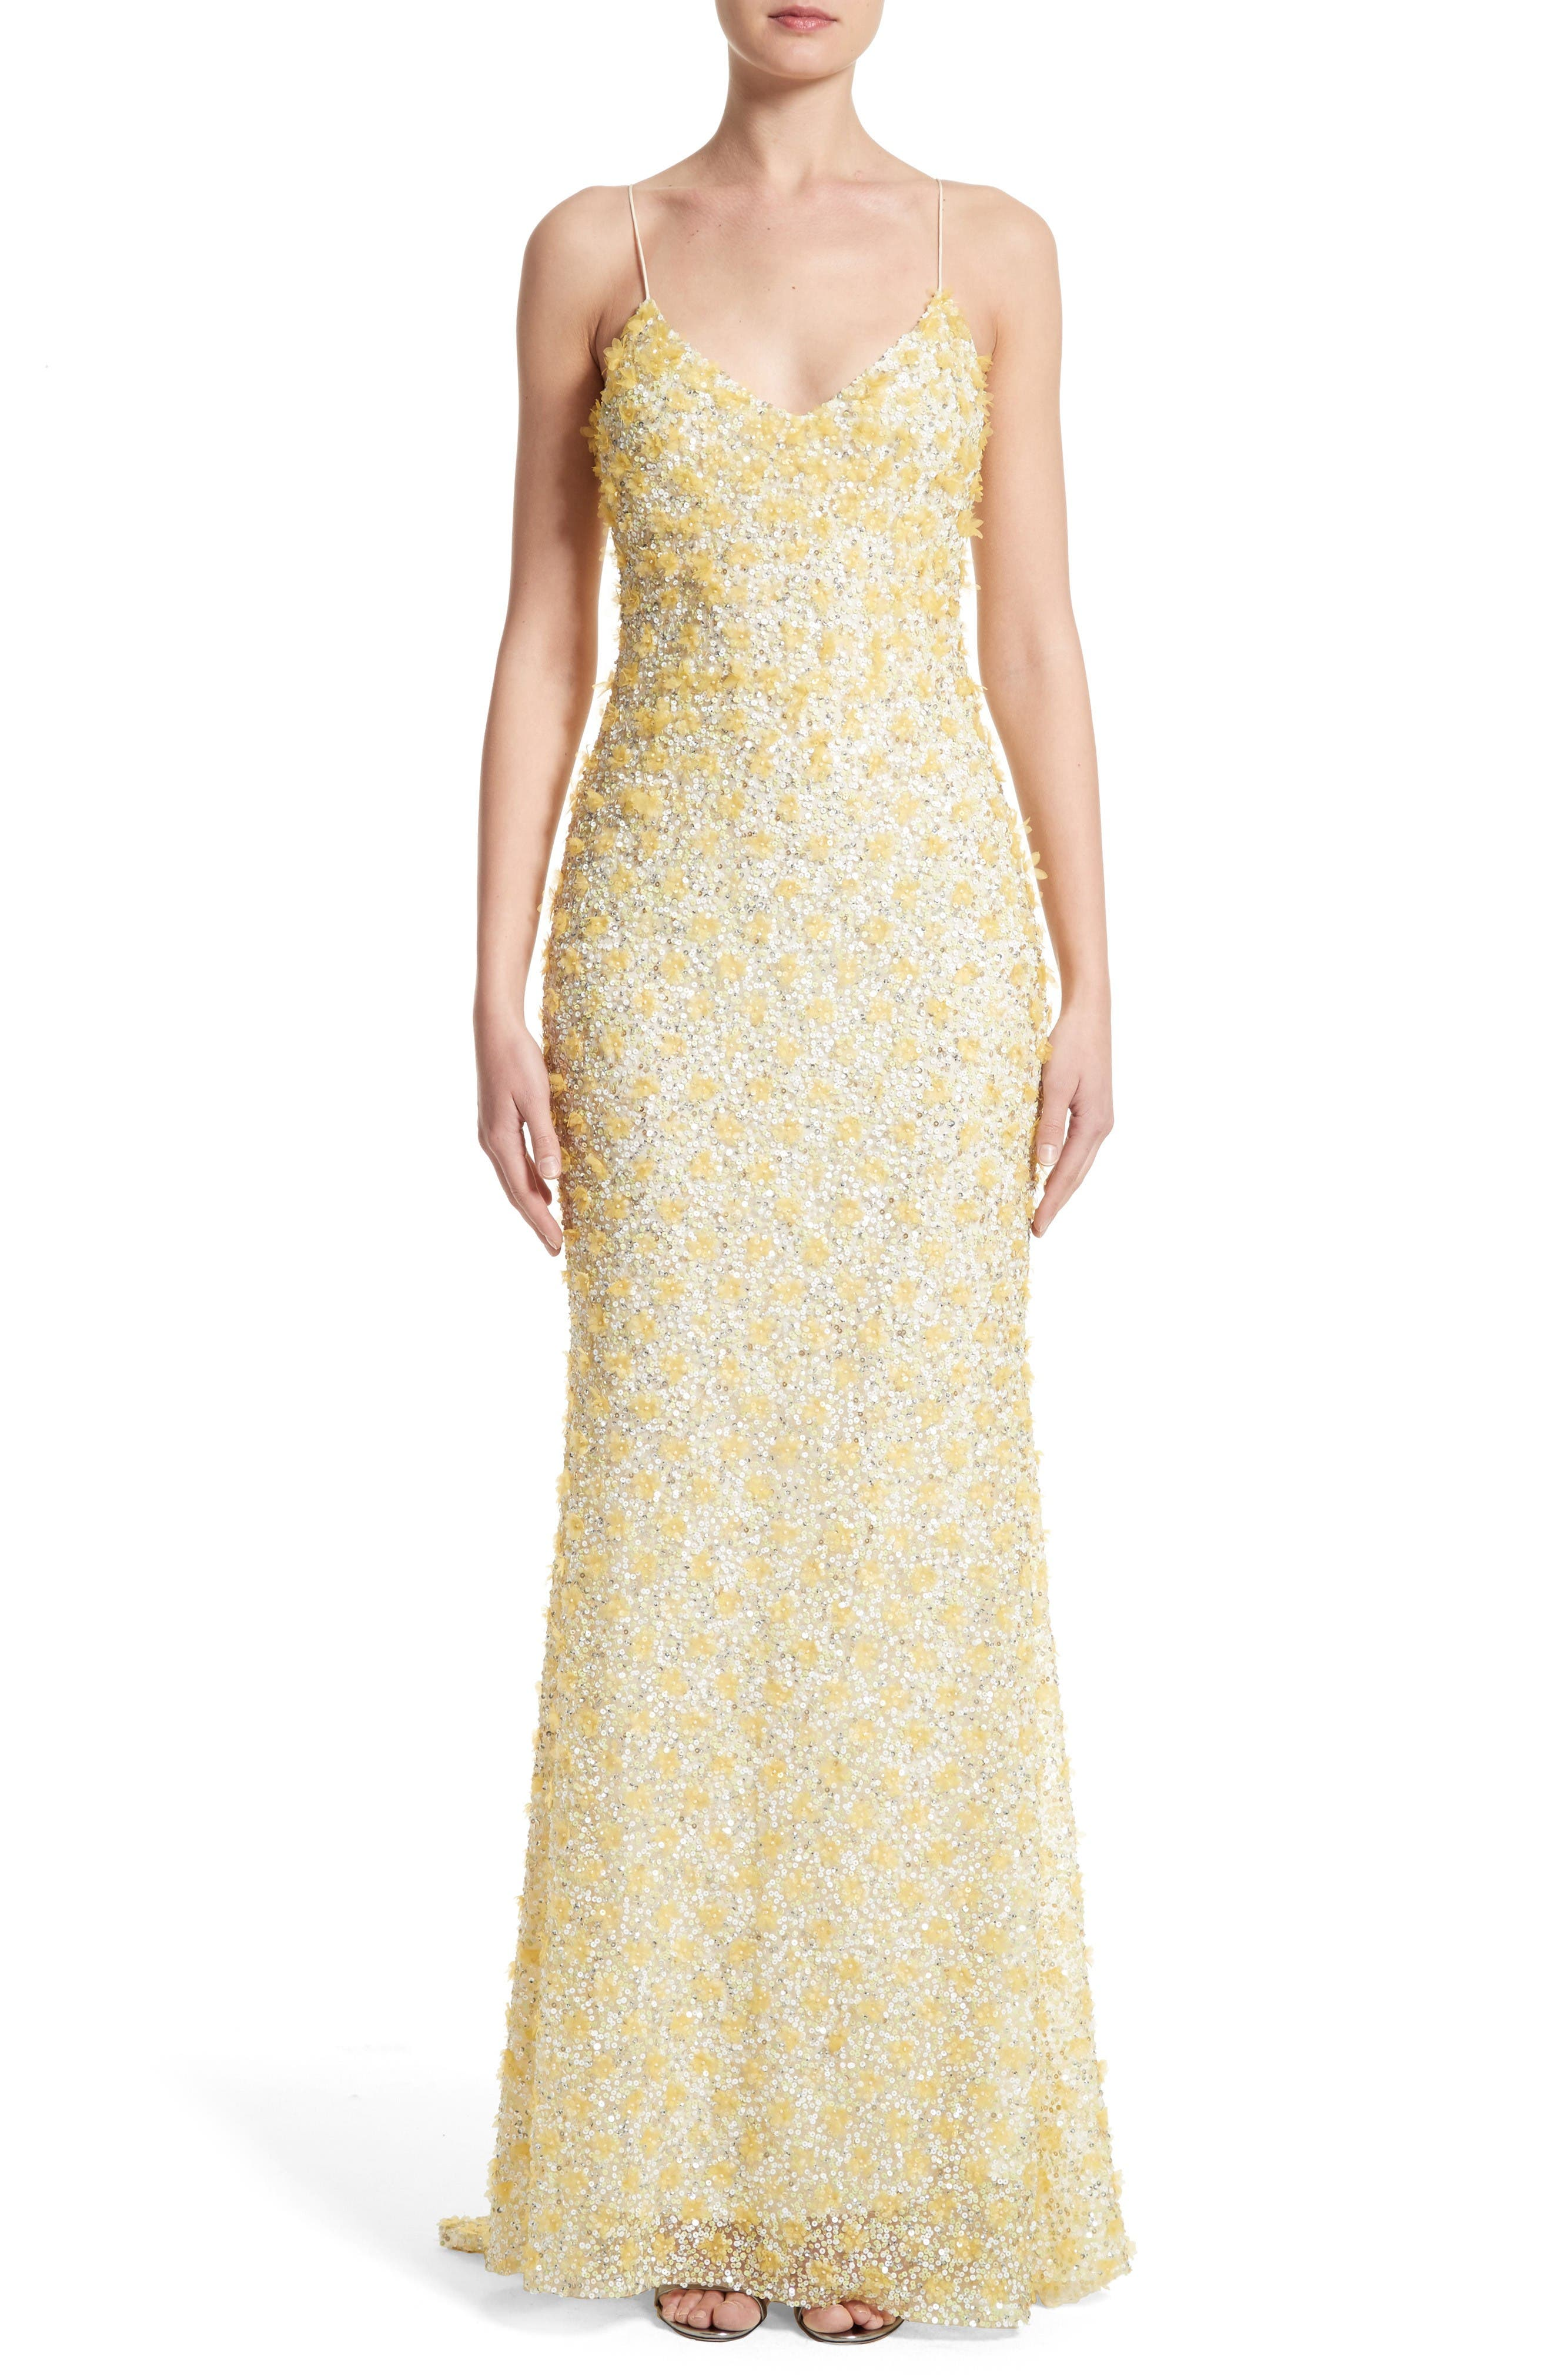 Badgley Mischka Couture Embellished Gown,                             Main thumbnail 1, color,                             Yellow